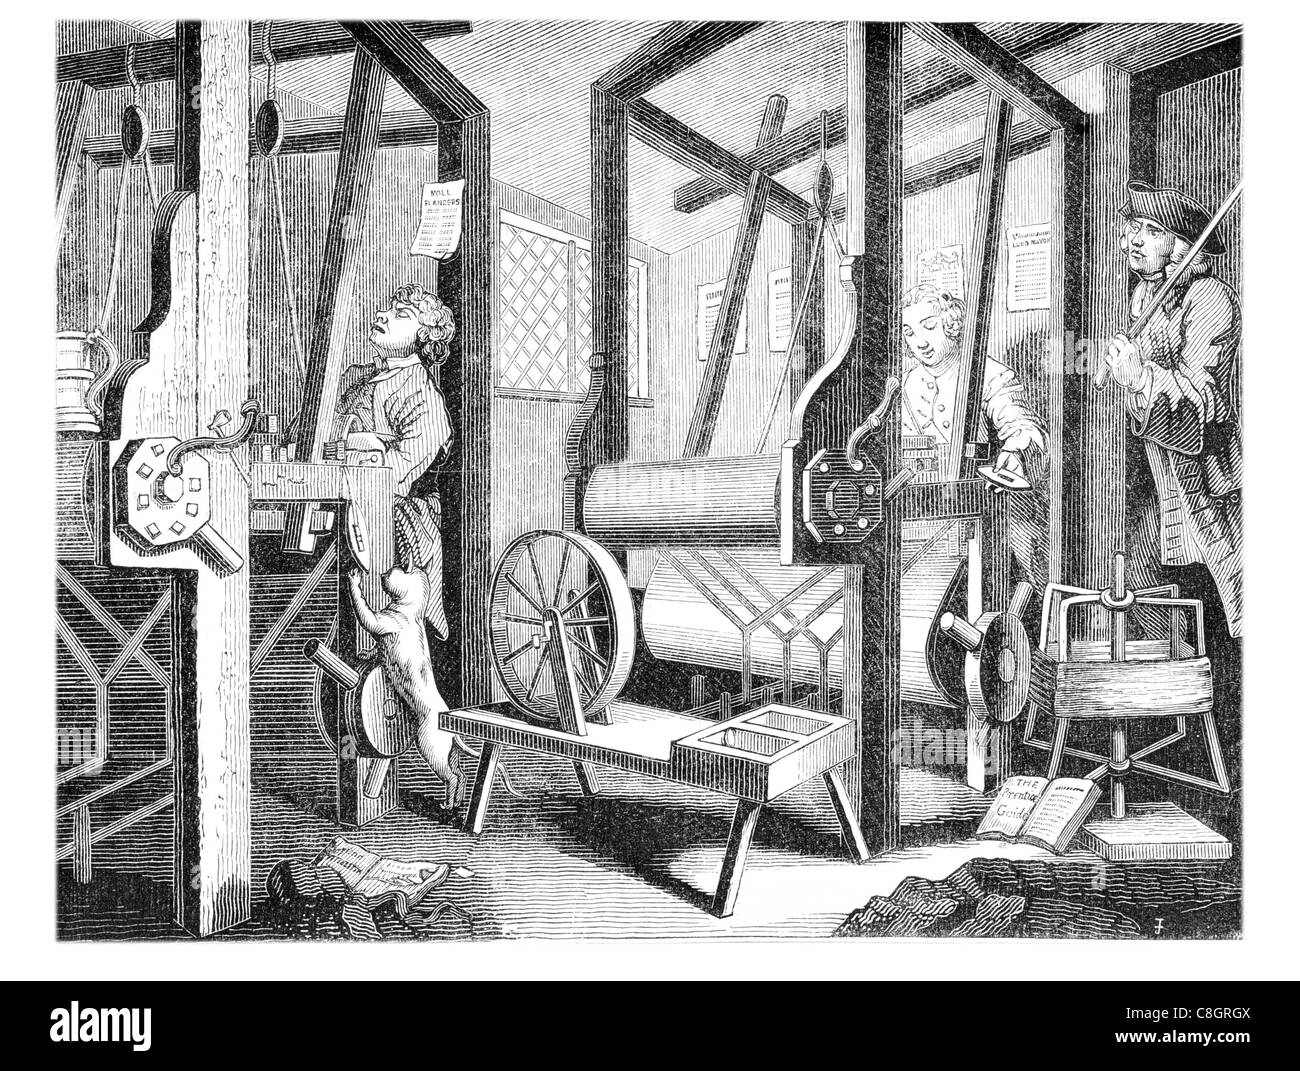 clothiers looms loom 18th century shuttle reed heddles war beam cottage industry clothier dog pet workshop - Stock Image